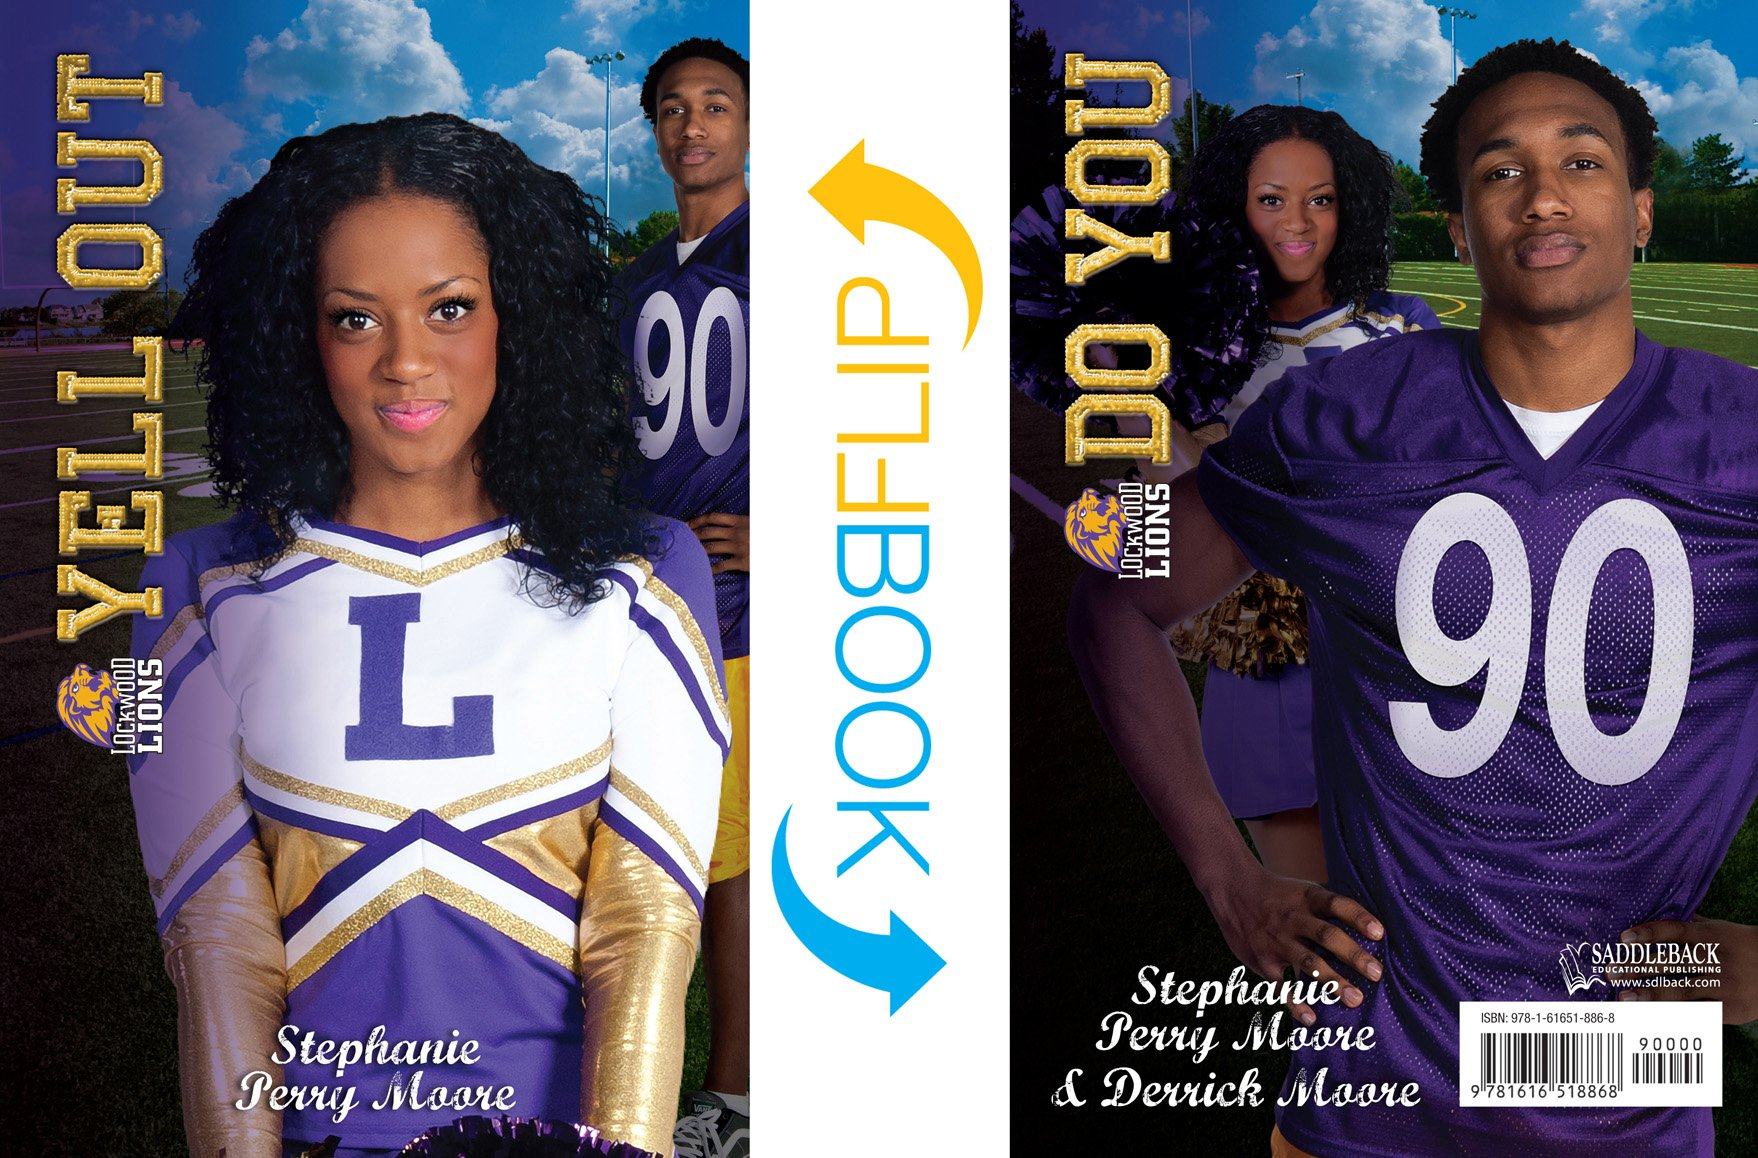 Amazon.com: Yell Out / Do You (Cheer Drama / Baller Swag) (Lockwood High  Series) (Lockwood Lions) (9781616518868): Stephanie Perry Moore: Books